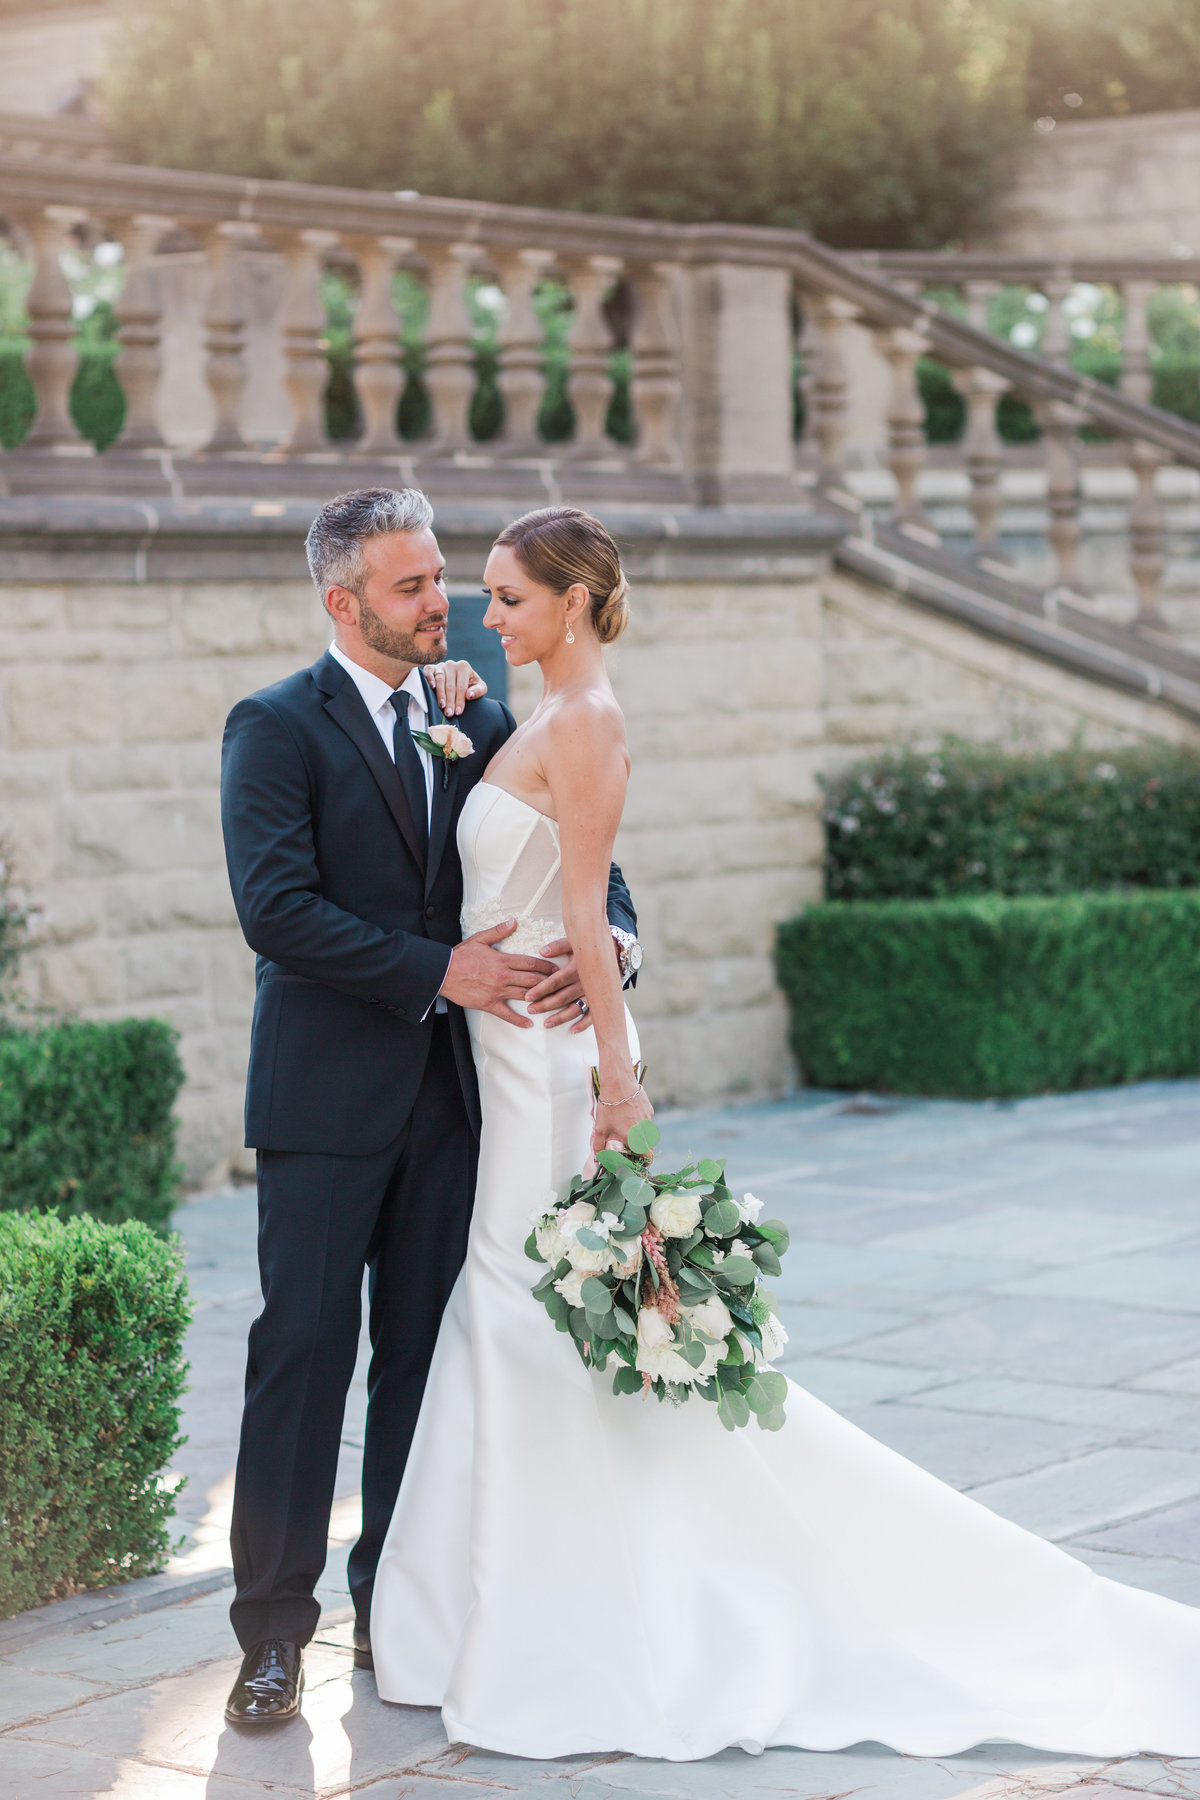 Greystone_Mansion_Intimate_Black_Tie_Wedding_Valorie_Darling_Photography - 135 of 206